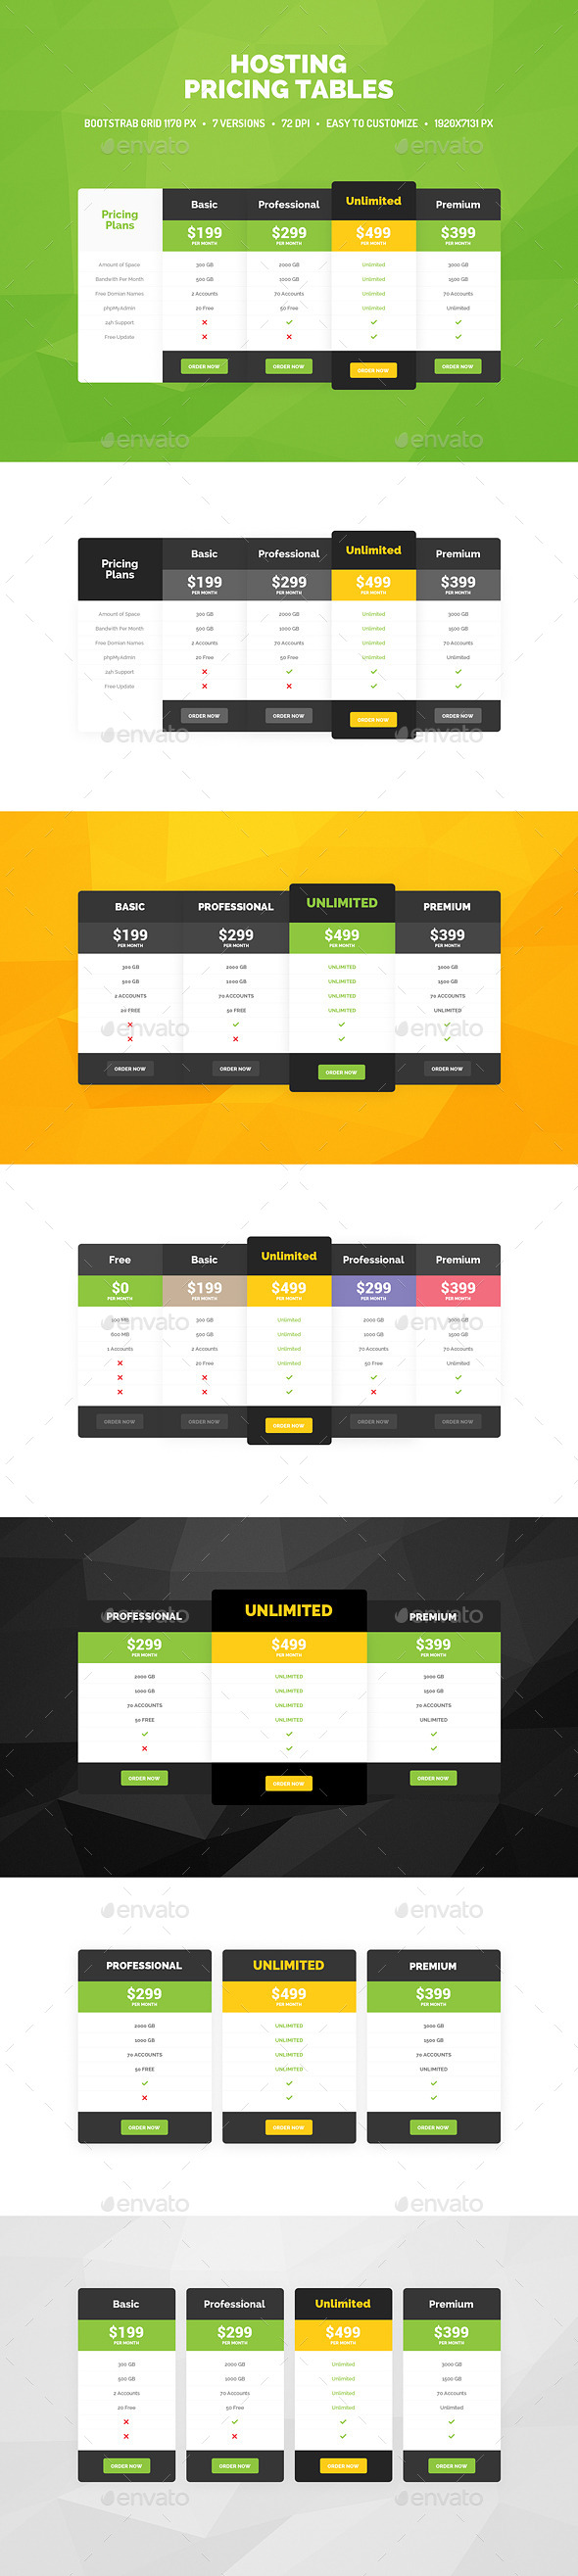 GraphicRiver Pricing Tables 9838737